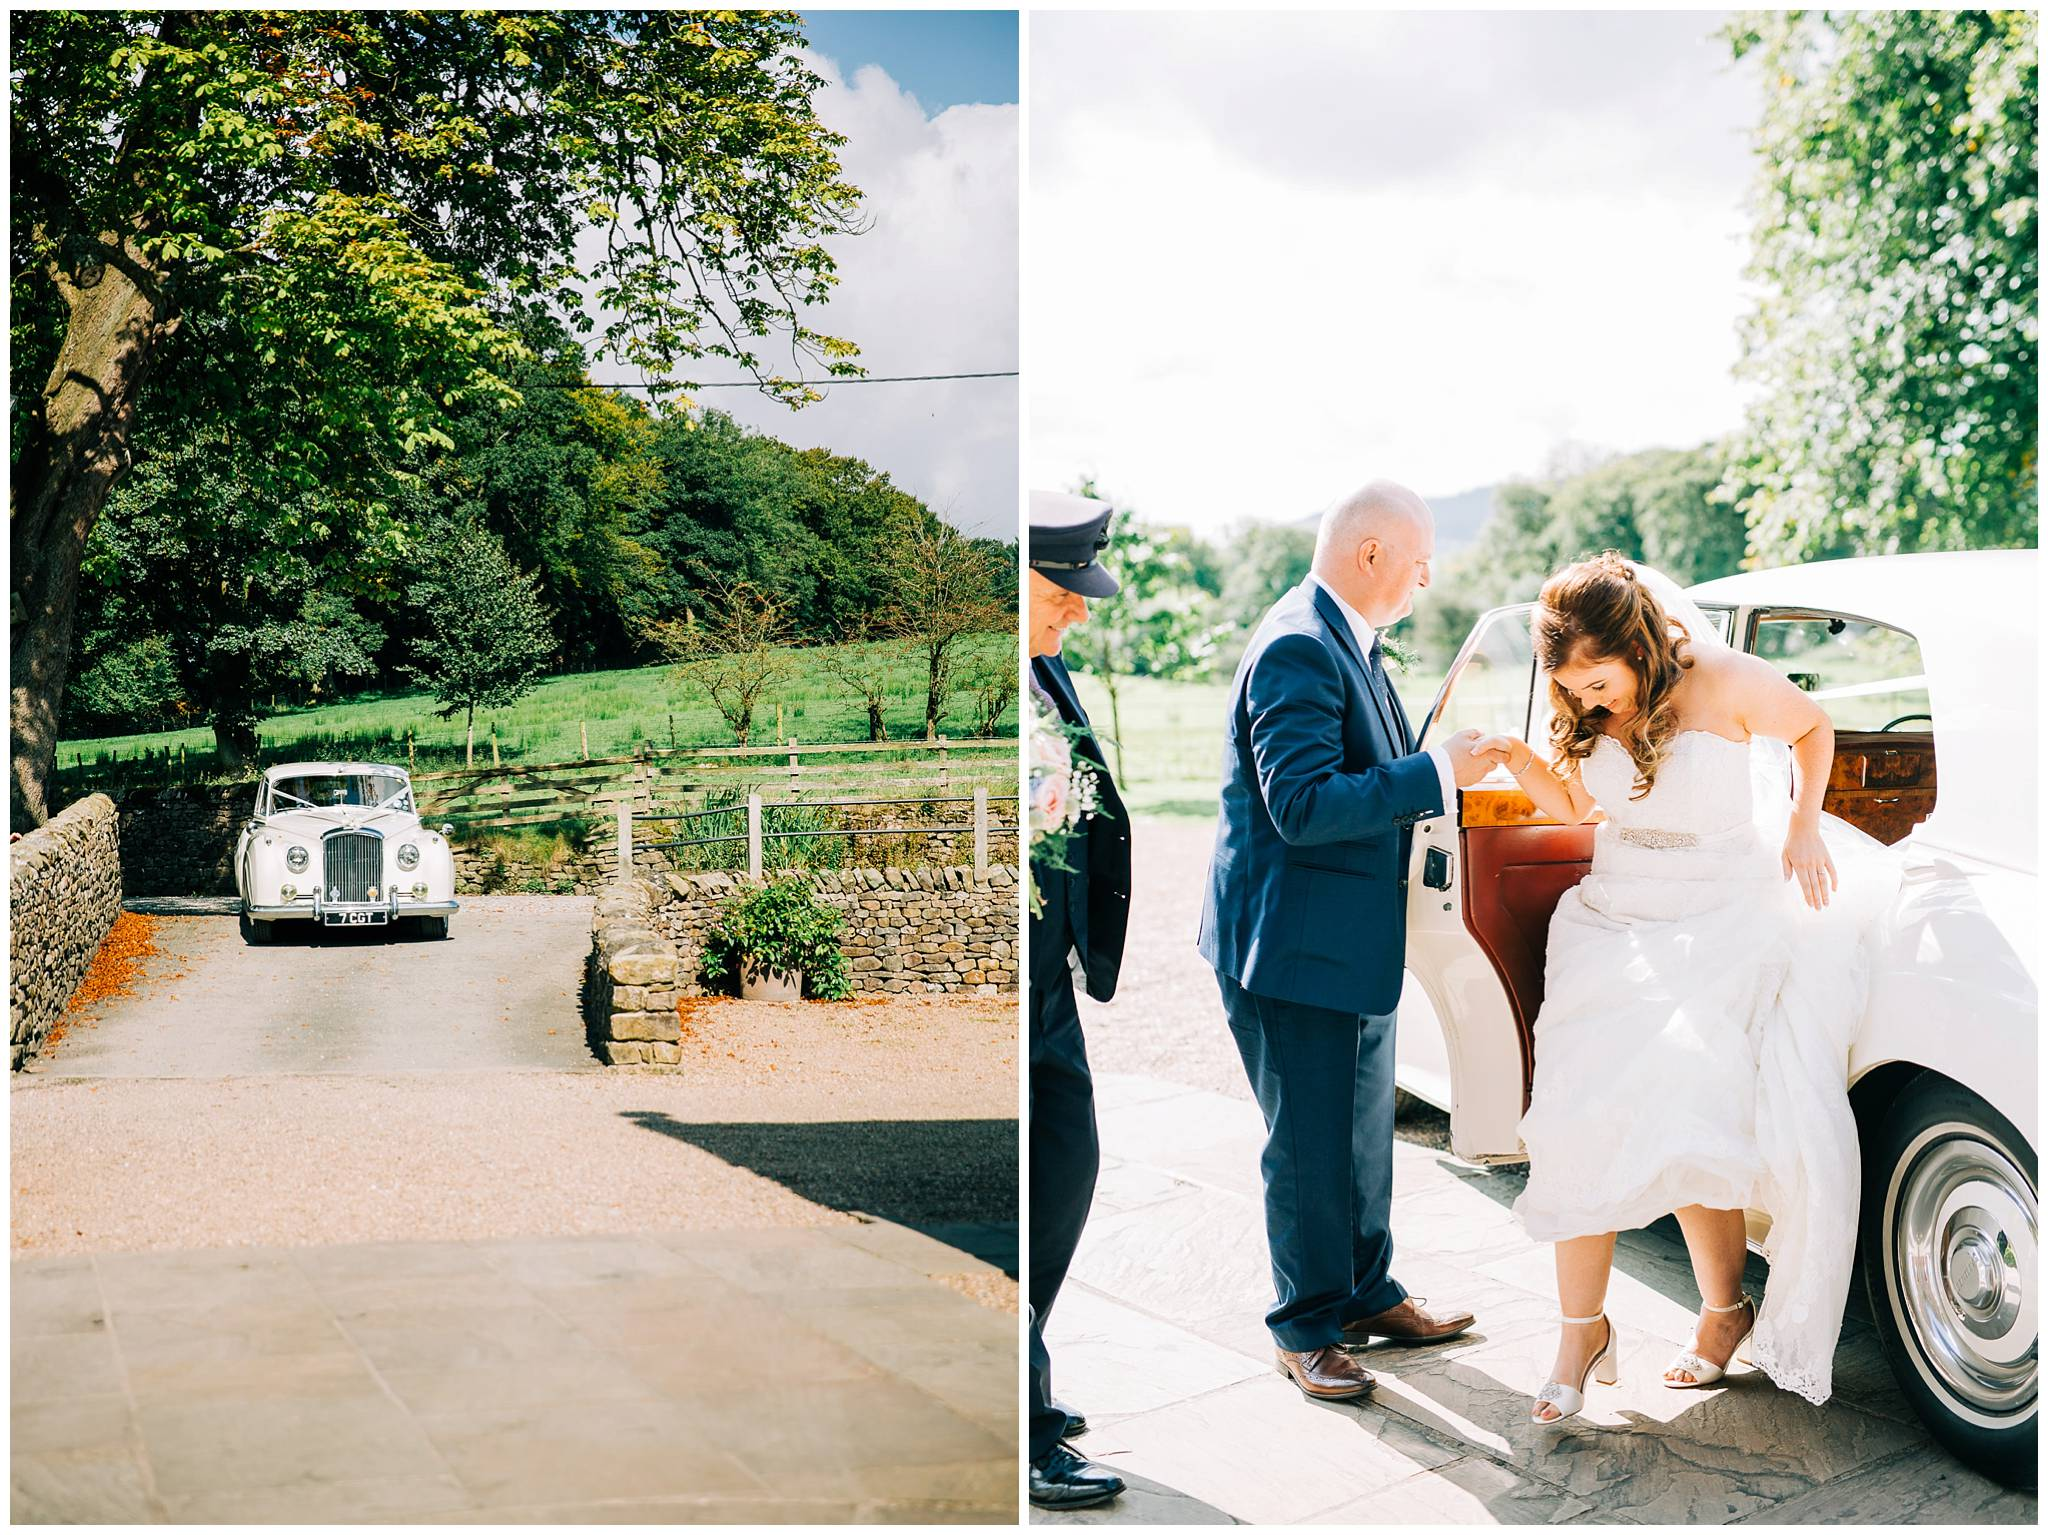 the bridal bentley car arrives, and the bride steps out of the car whilst holding the hand of her stepfather in one hand and her dress in the other